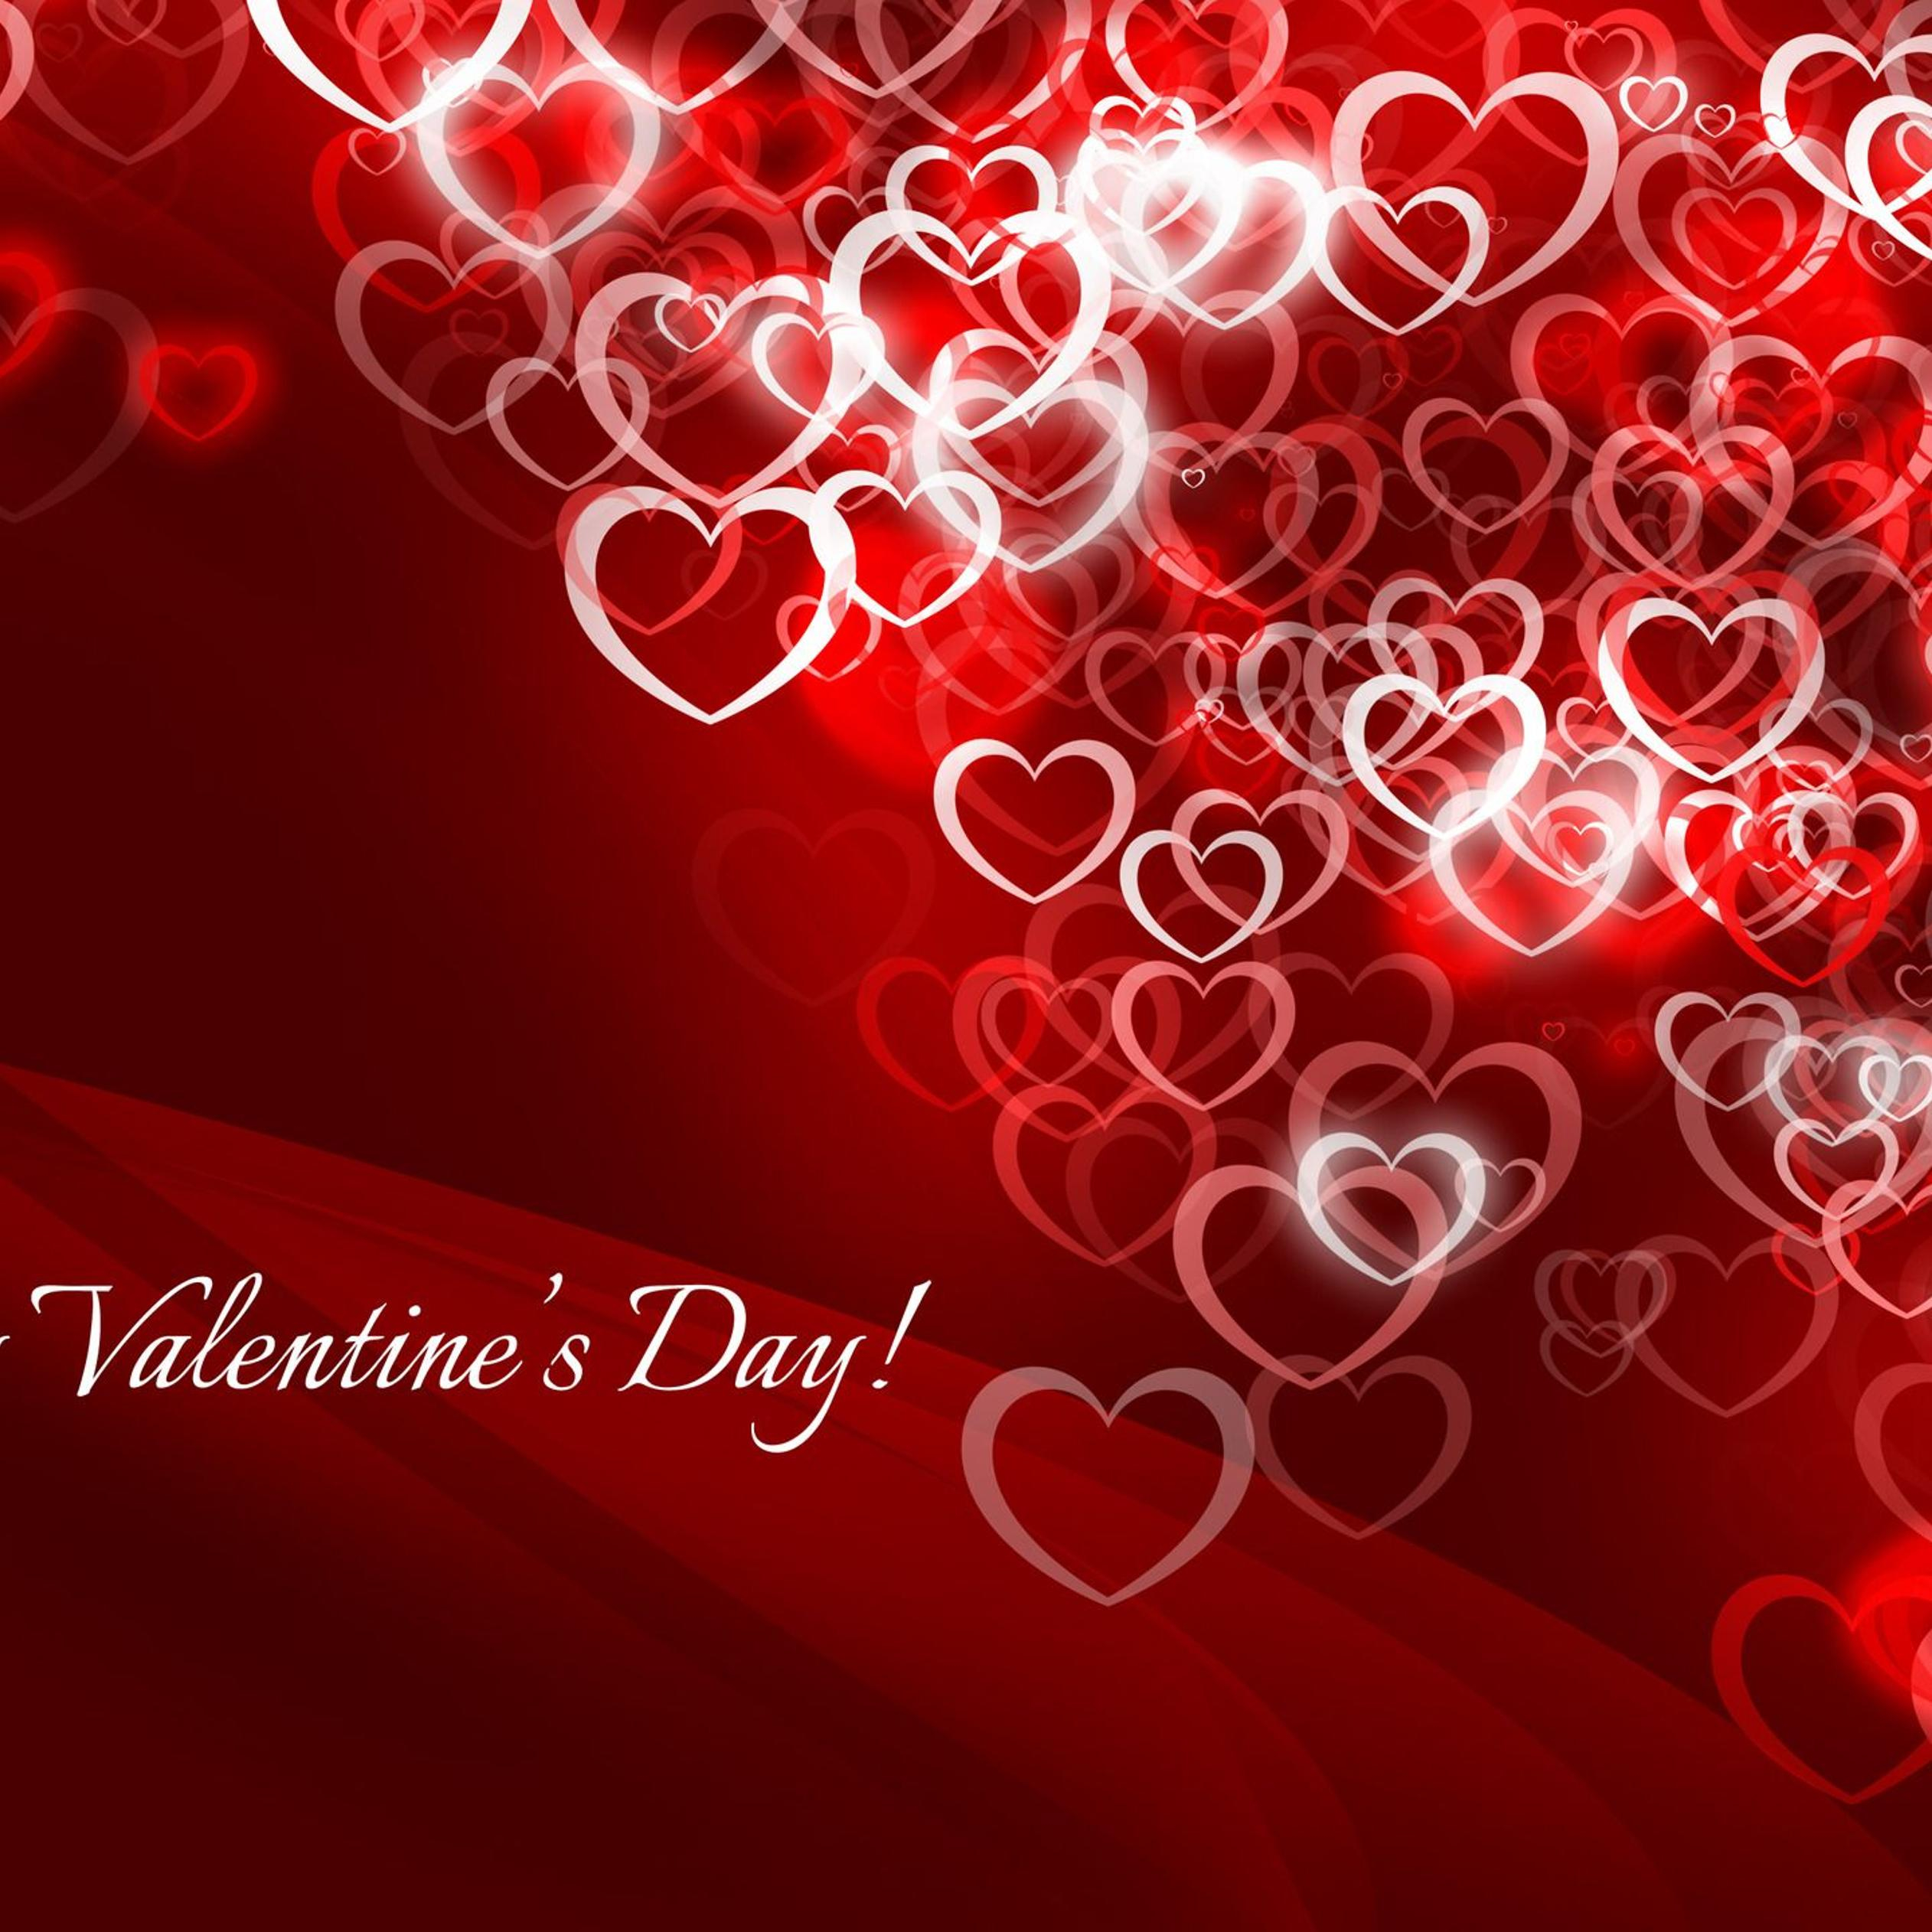 digital art love wallpaper hearts from valentines day 2524x2524